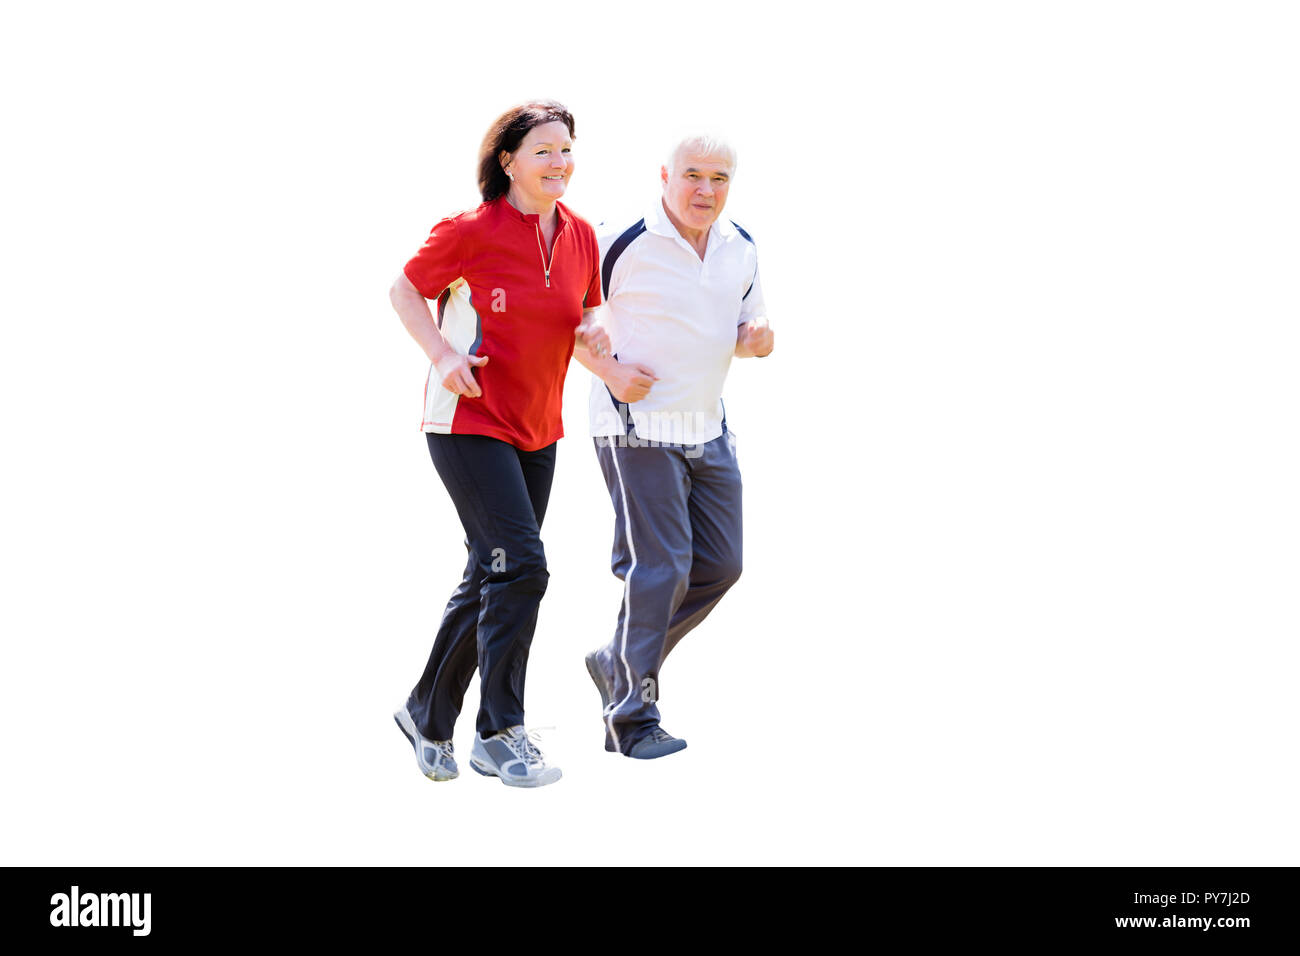 Portrait Of A Smiling Senior Couple Jogging On White Background - Stock Image